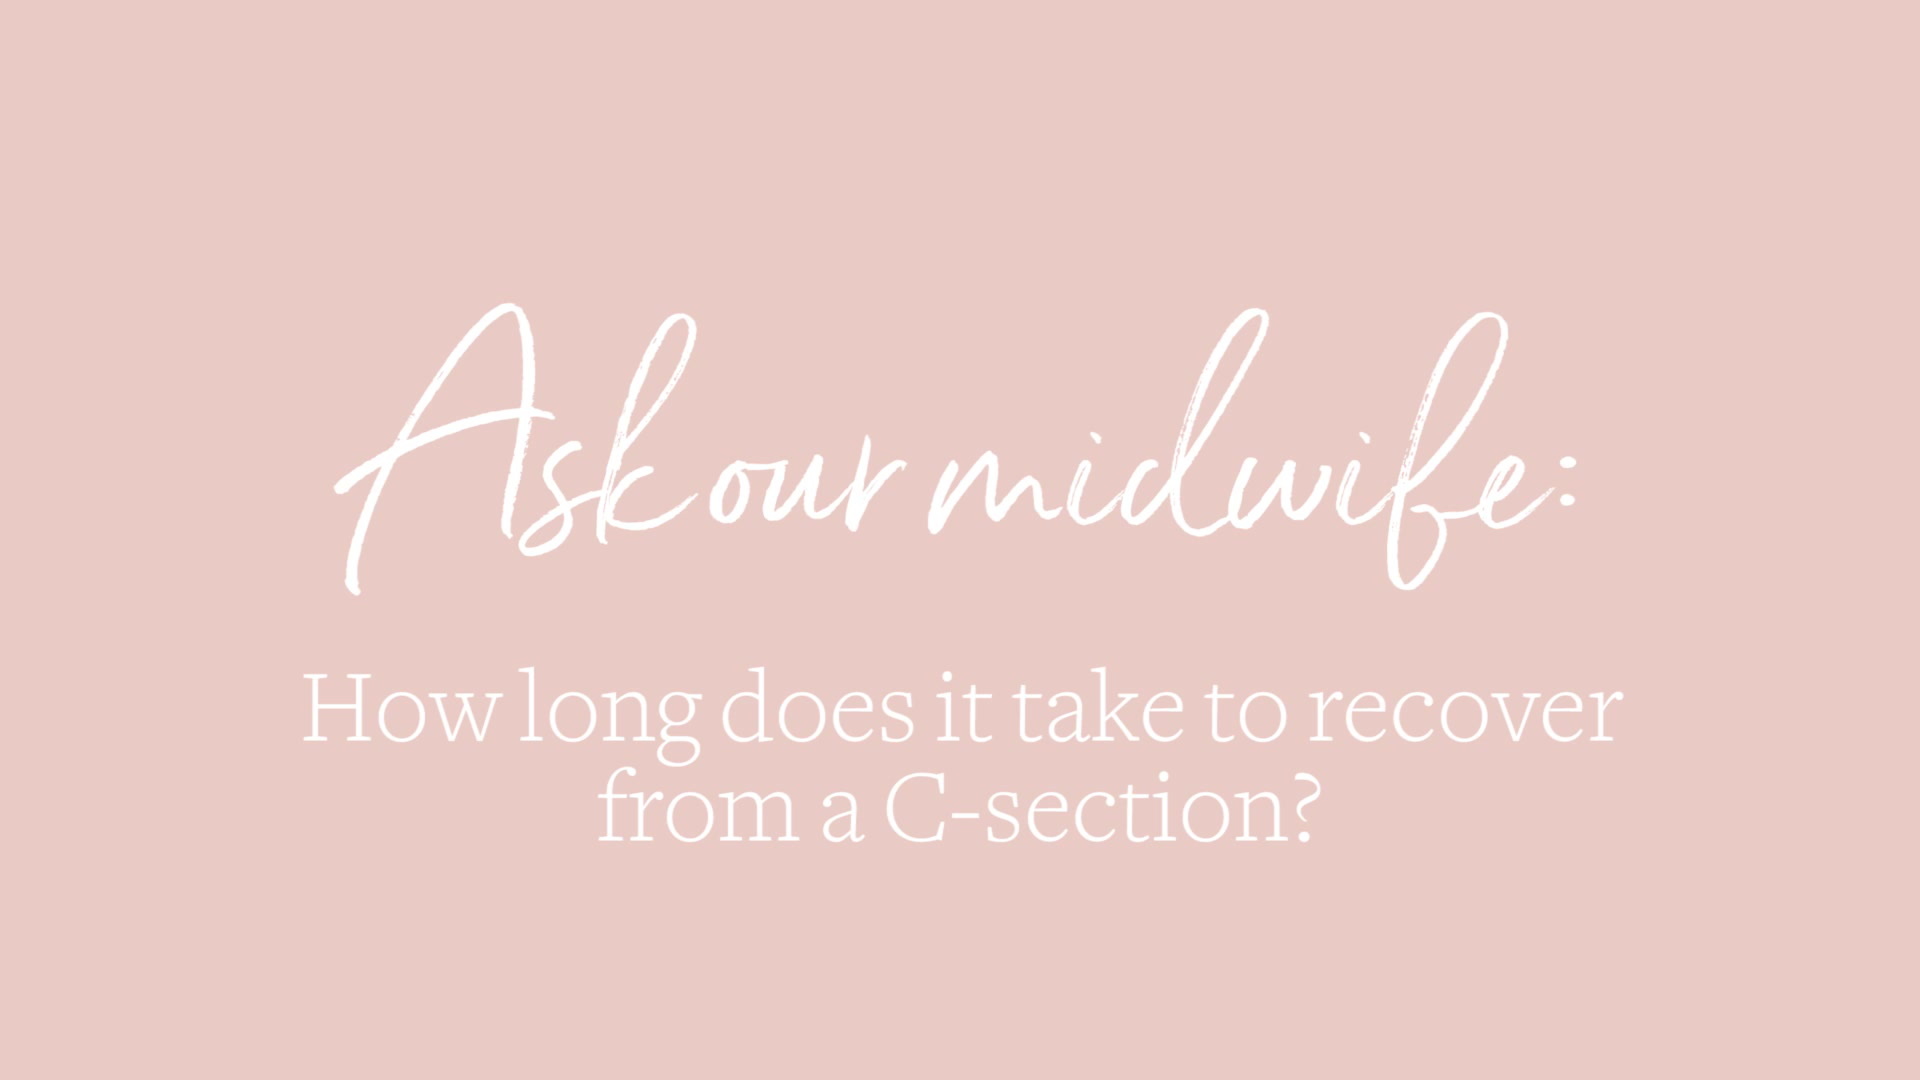 What happens during a C-section?